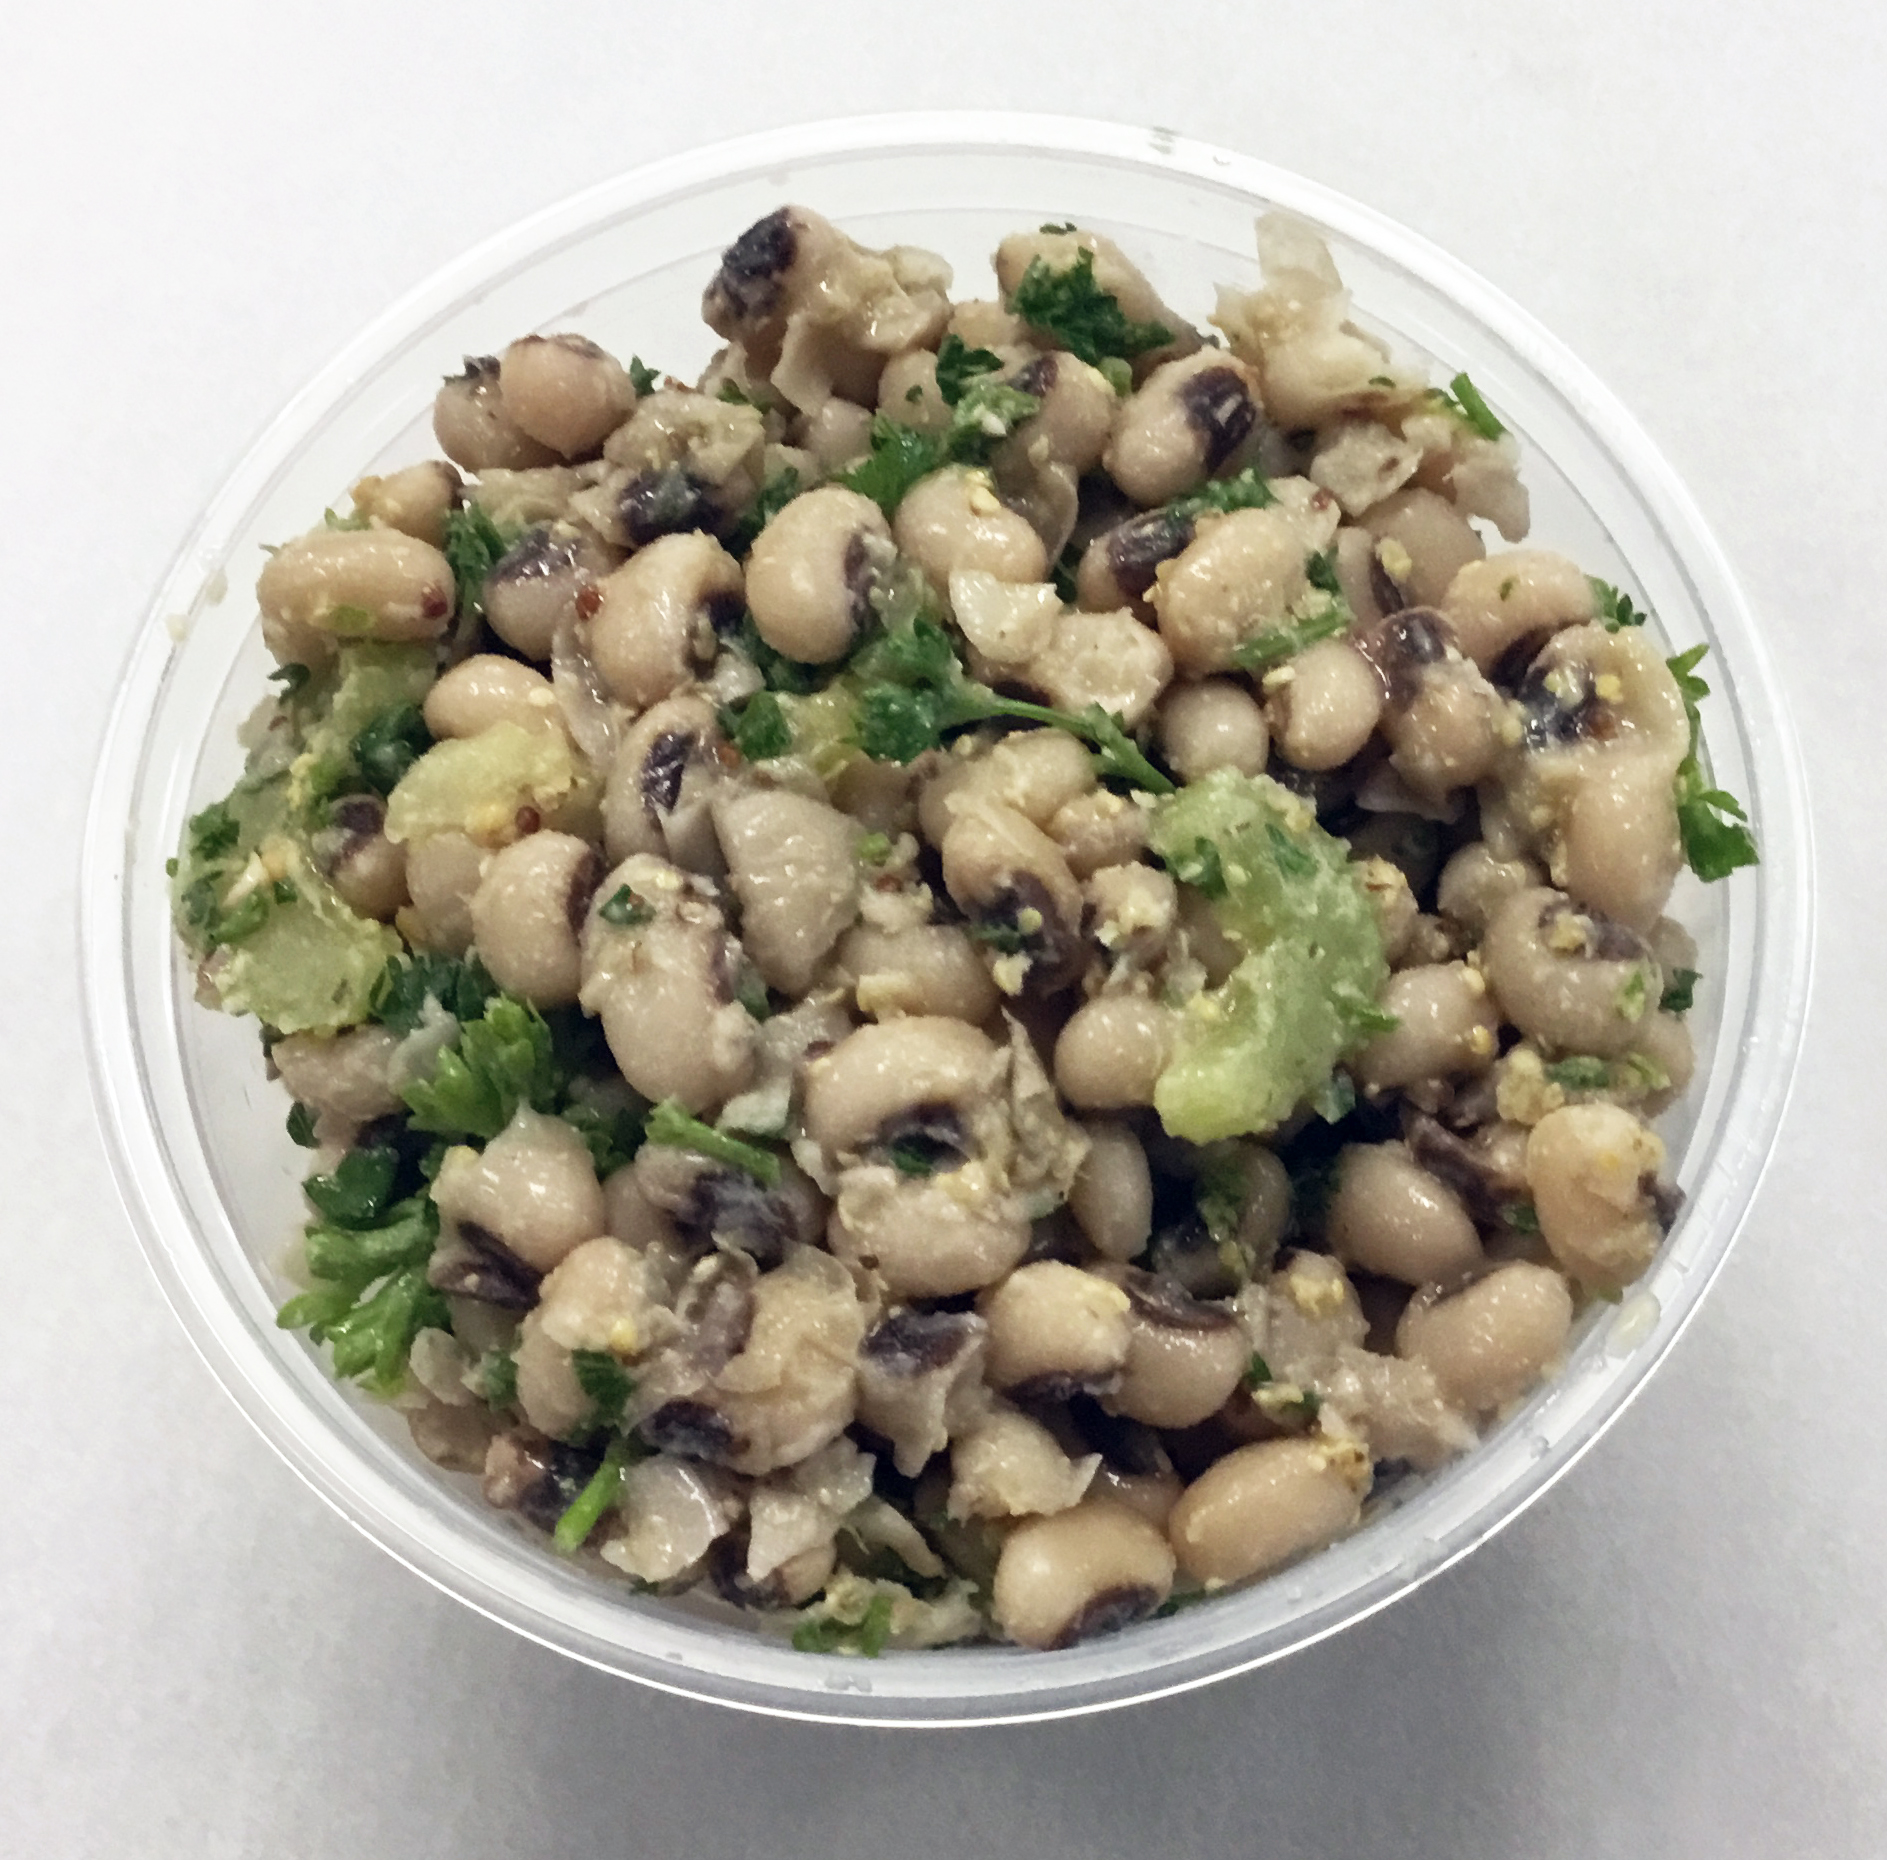 Black eyed peas with celery, parlsey and a stone ground mustard and brown rice vinegar dressing.